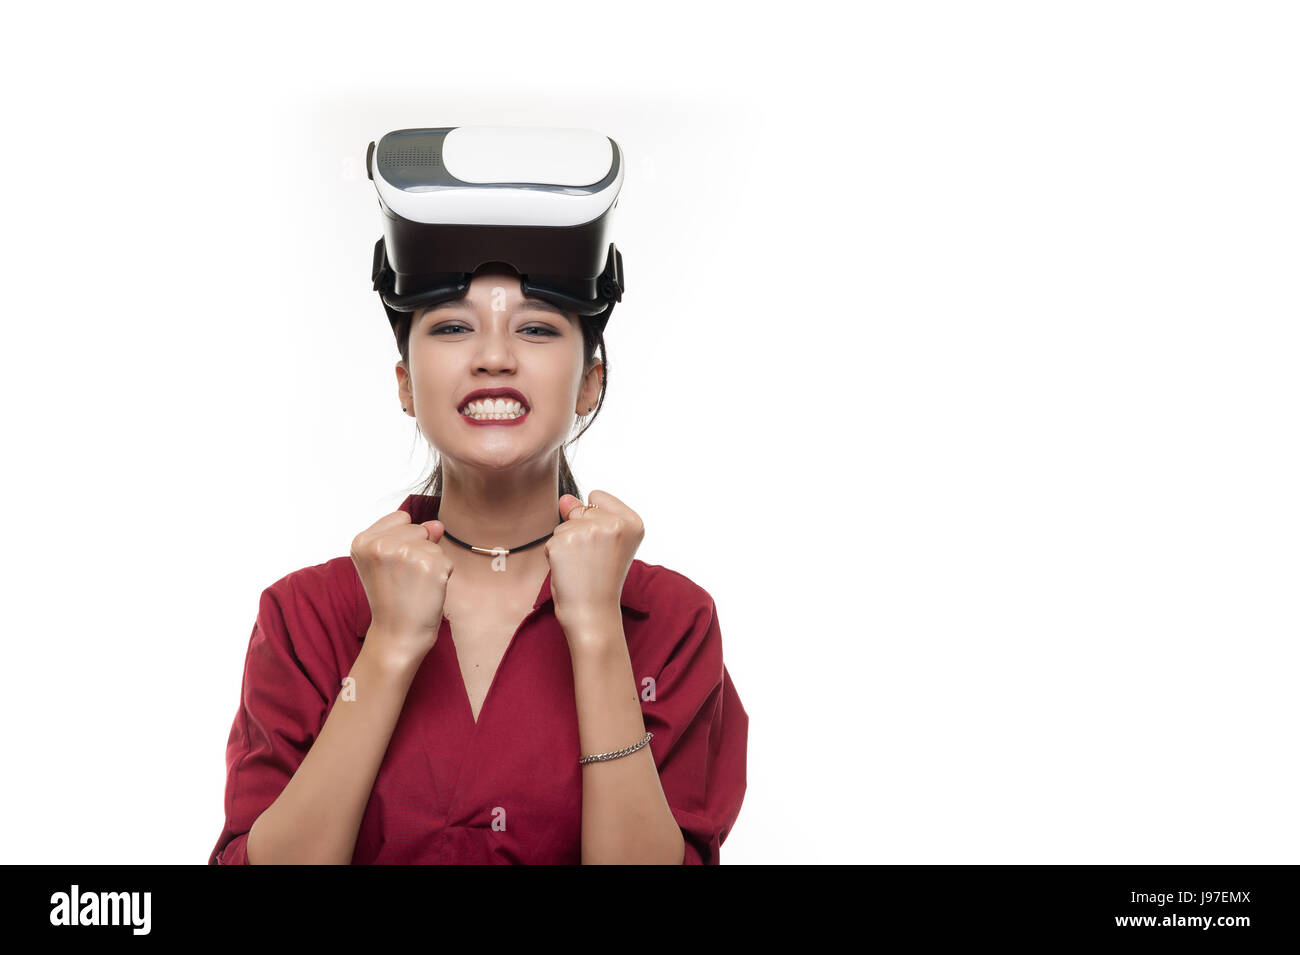 Action scene of Young attractive Asian businesswoman in red shirt ready to use VR Glasses. Virtual Reality experience for busniess activity in future  Stock Photo